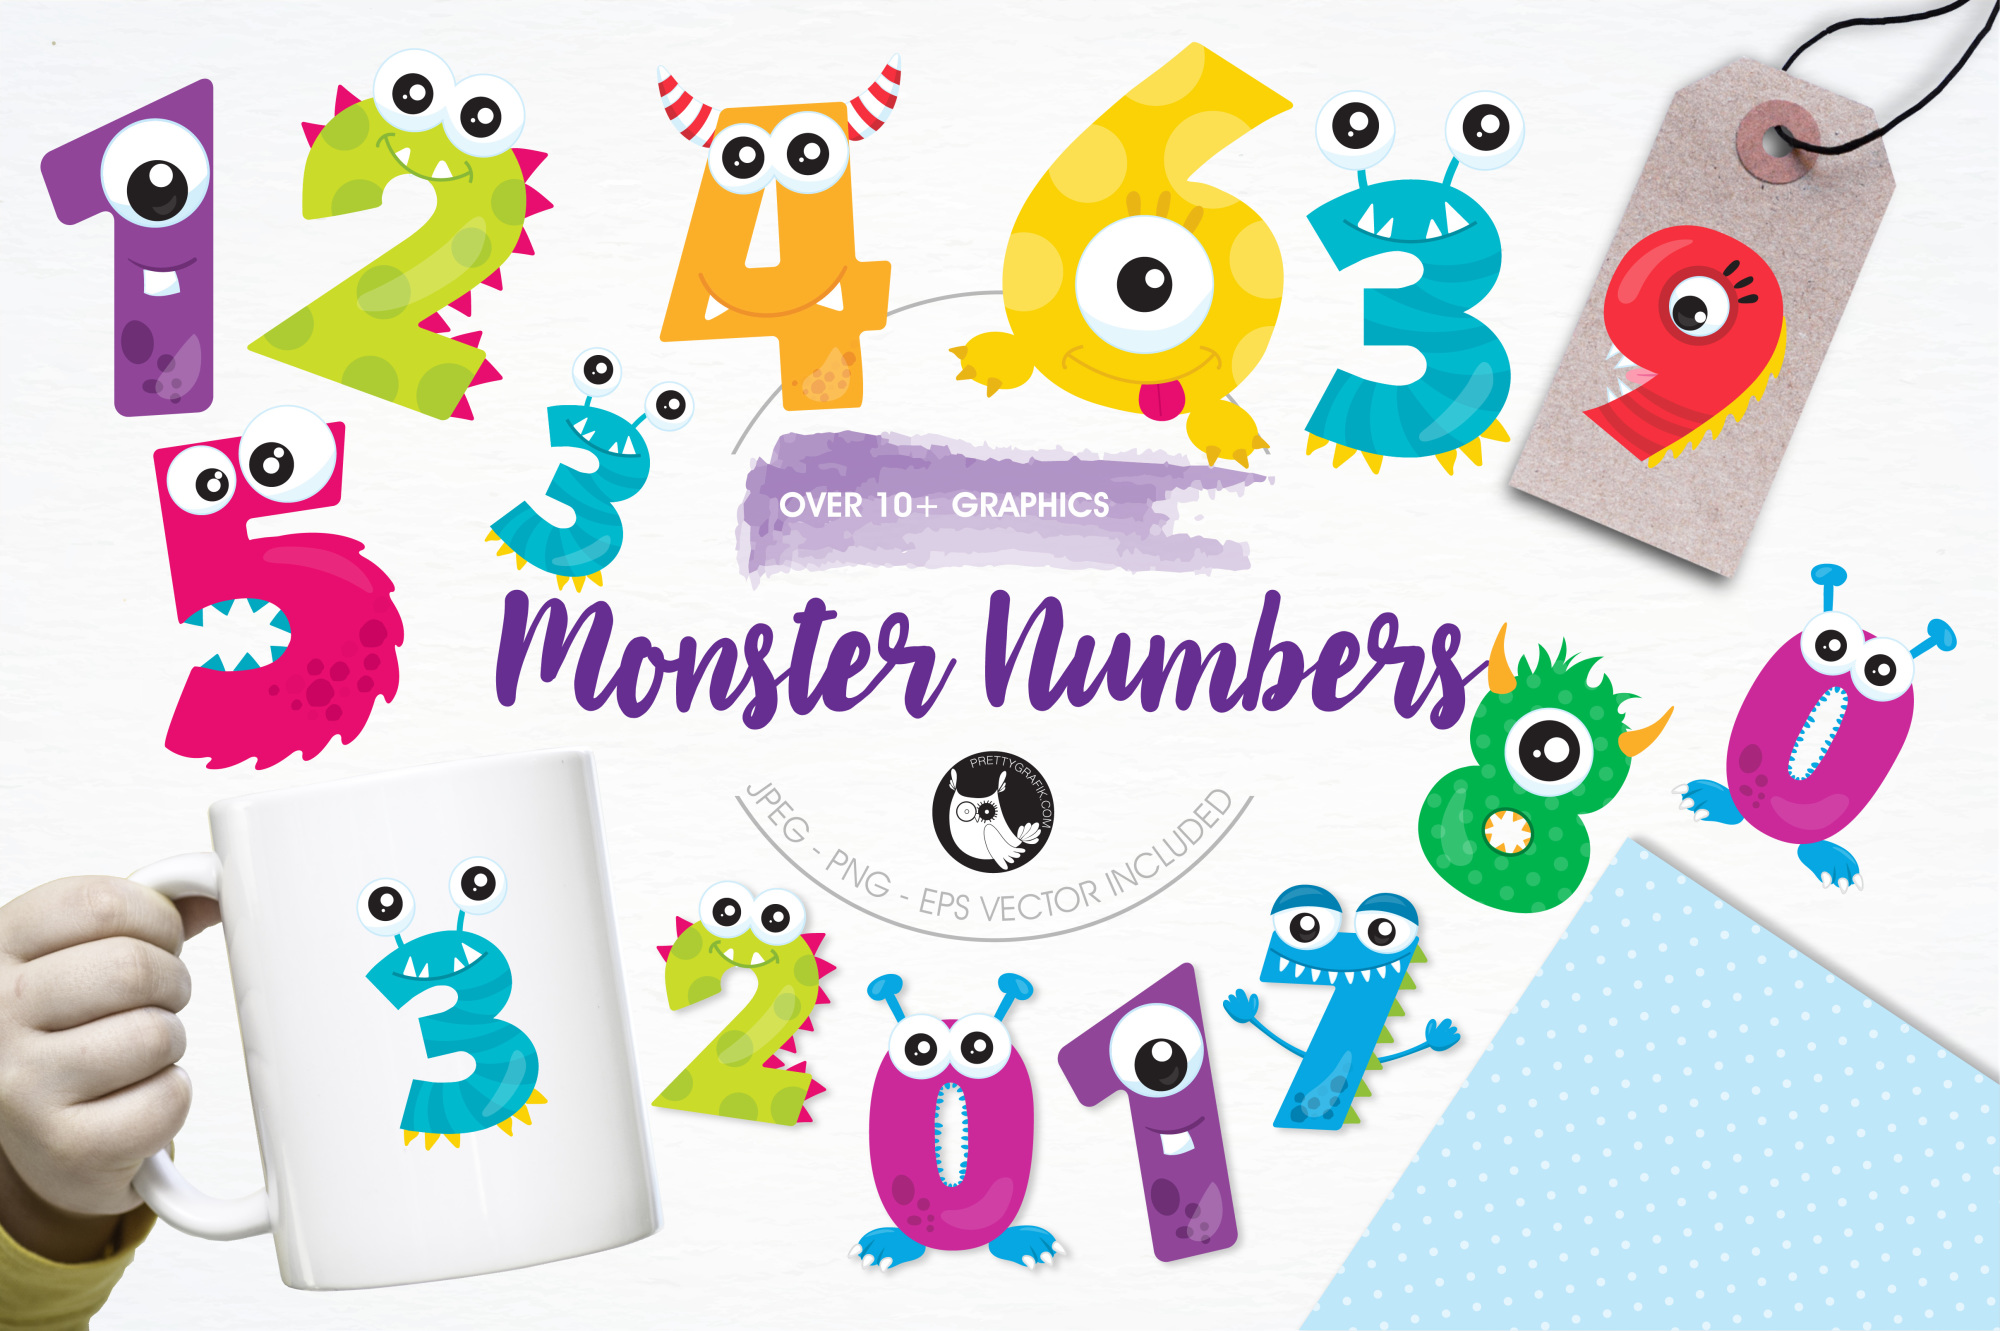 Monster Numbers graphics and illustrations example image 1